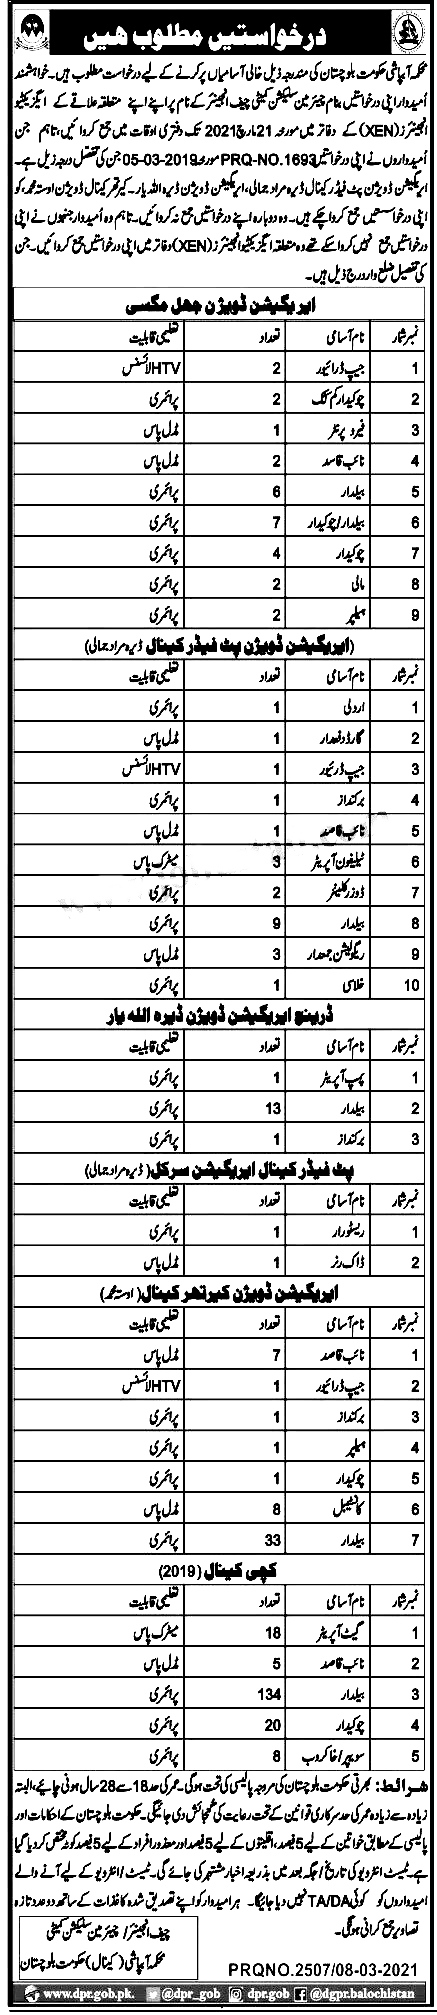 Irrigation Department Balochistan Jobs 2021